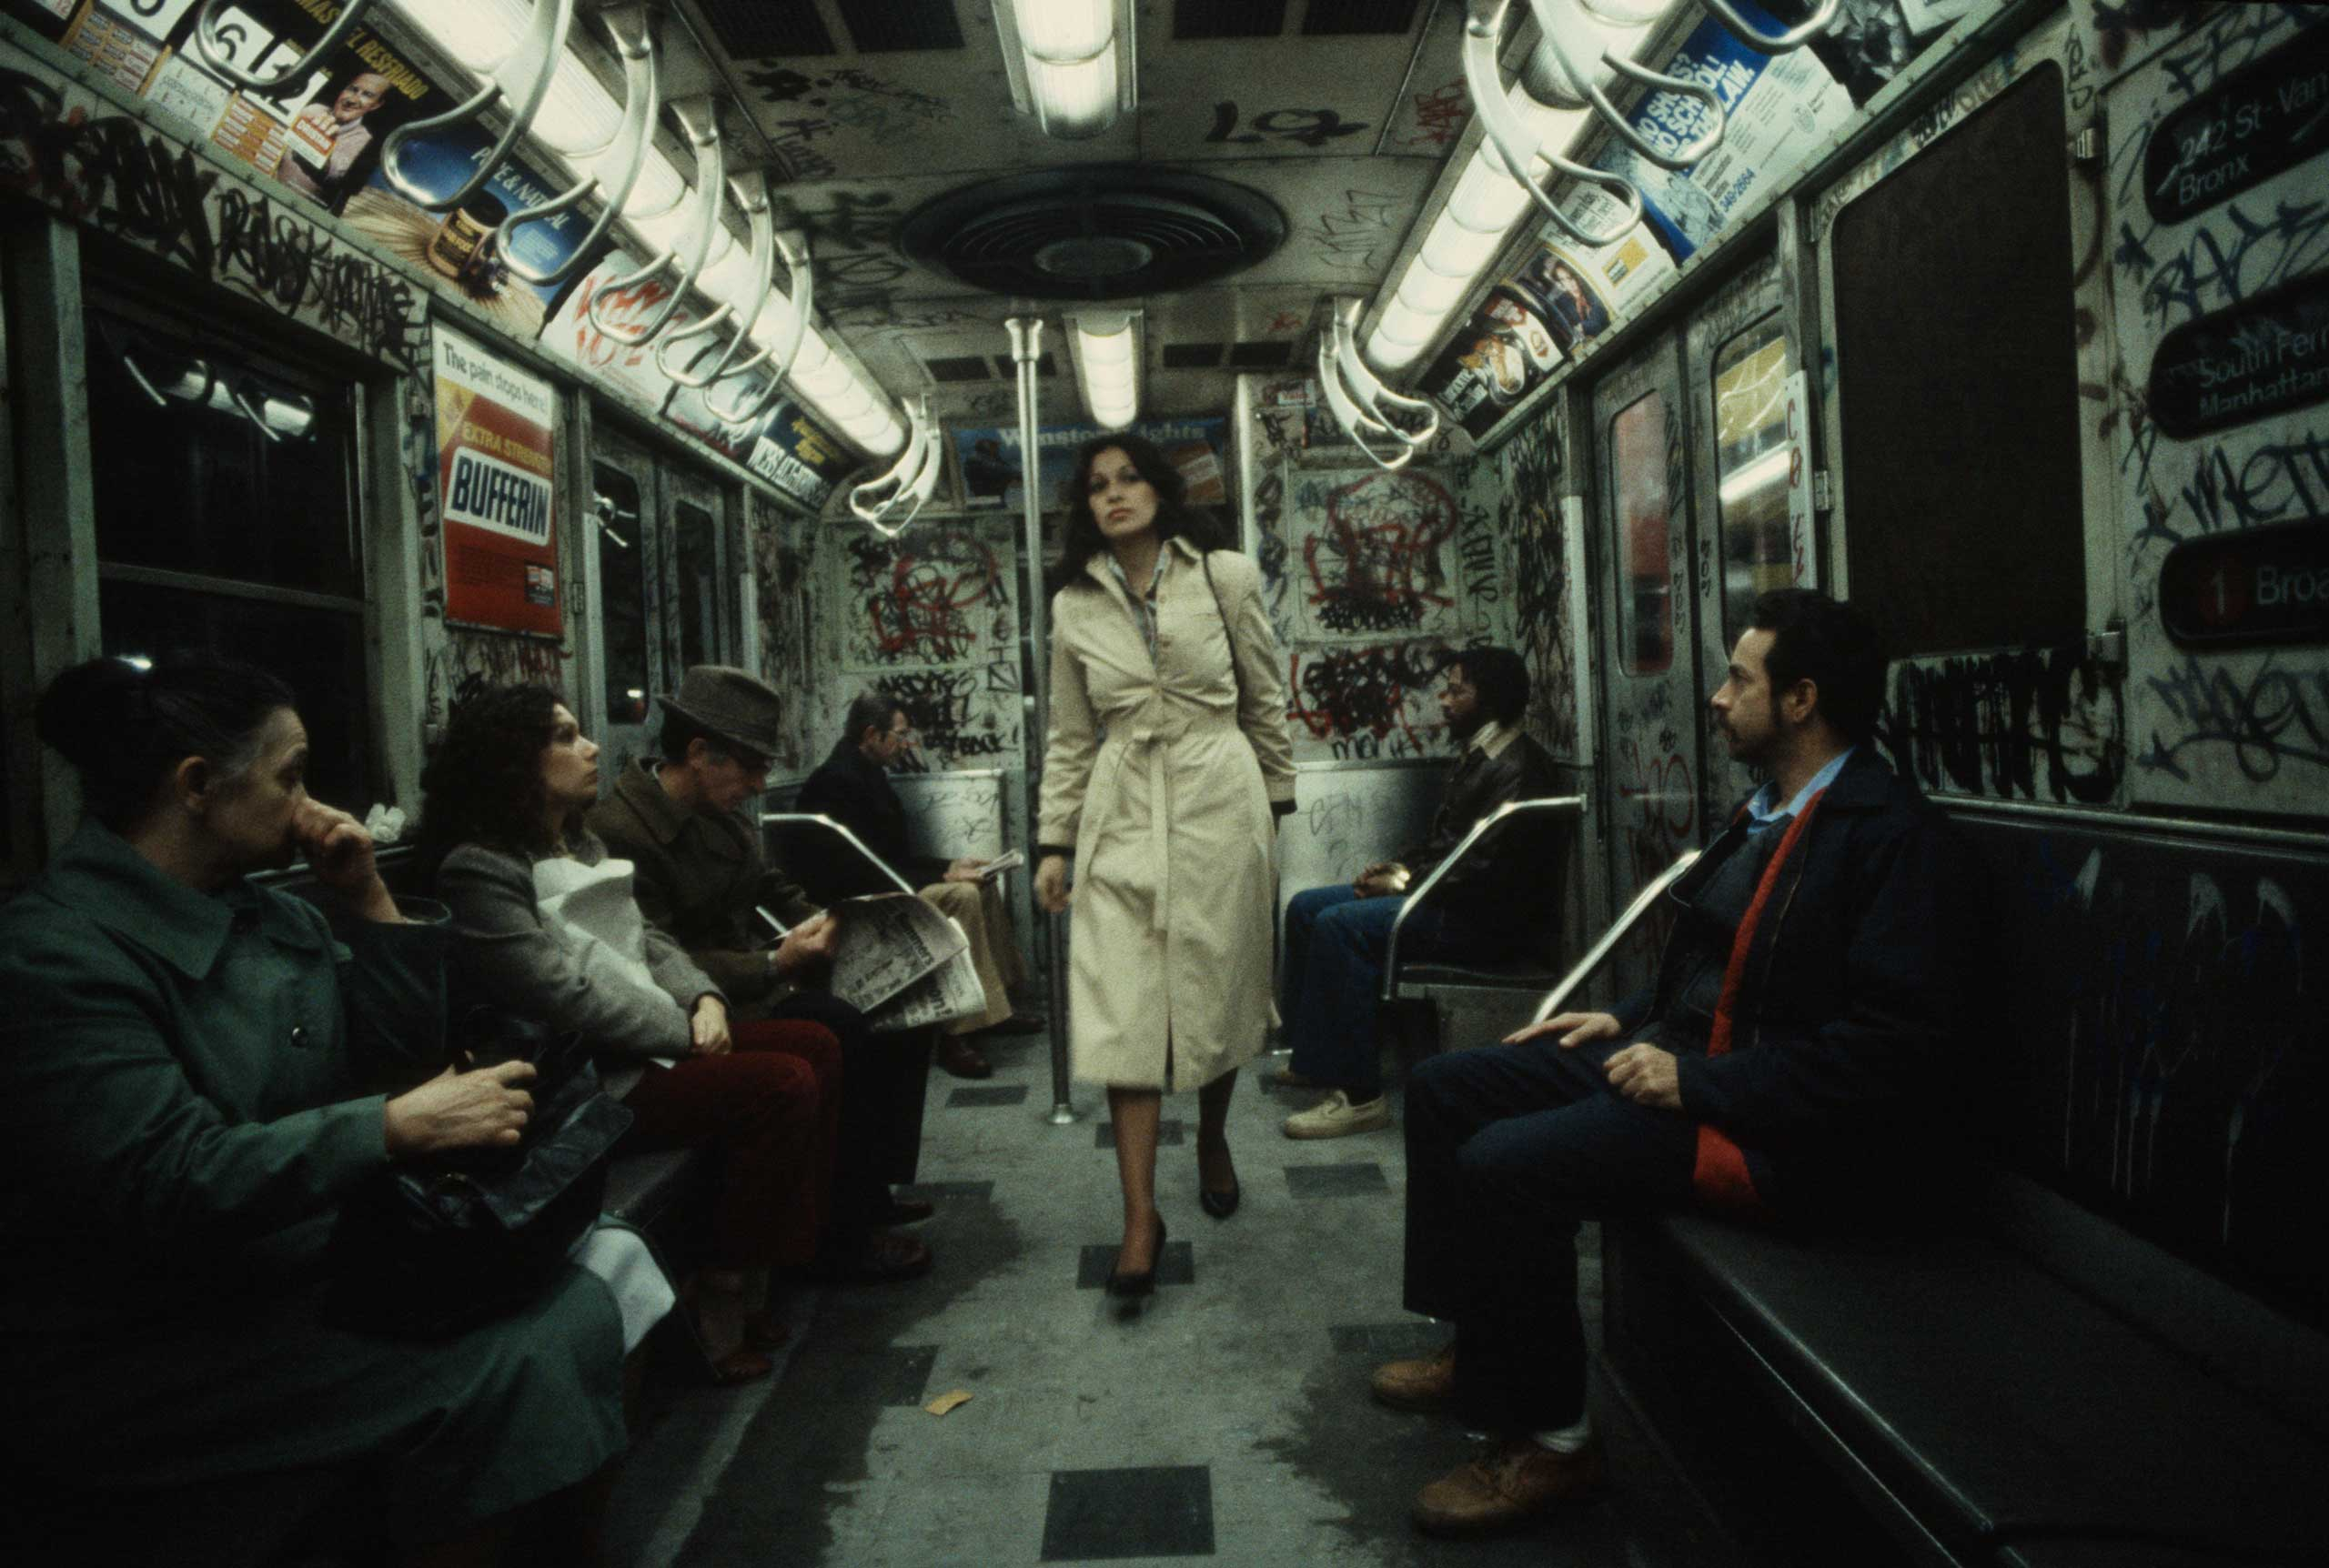 The following previously unpublished photos were taken by Christopher Morris in 1981: A woman walks through a heavily graffitied subway car, 1981.